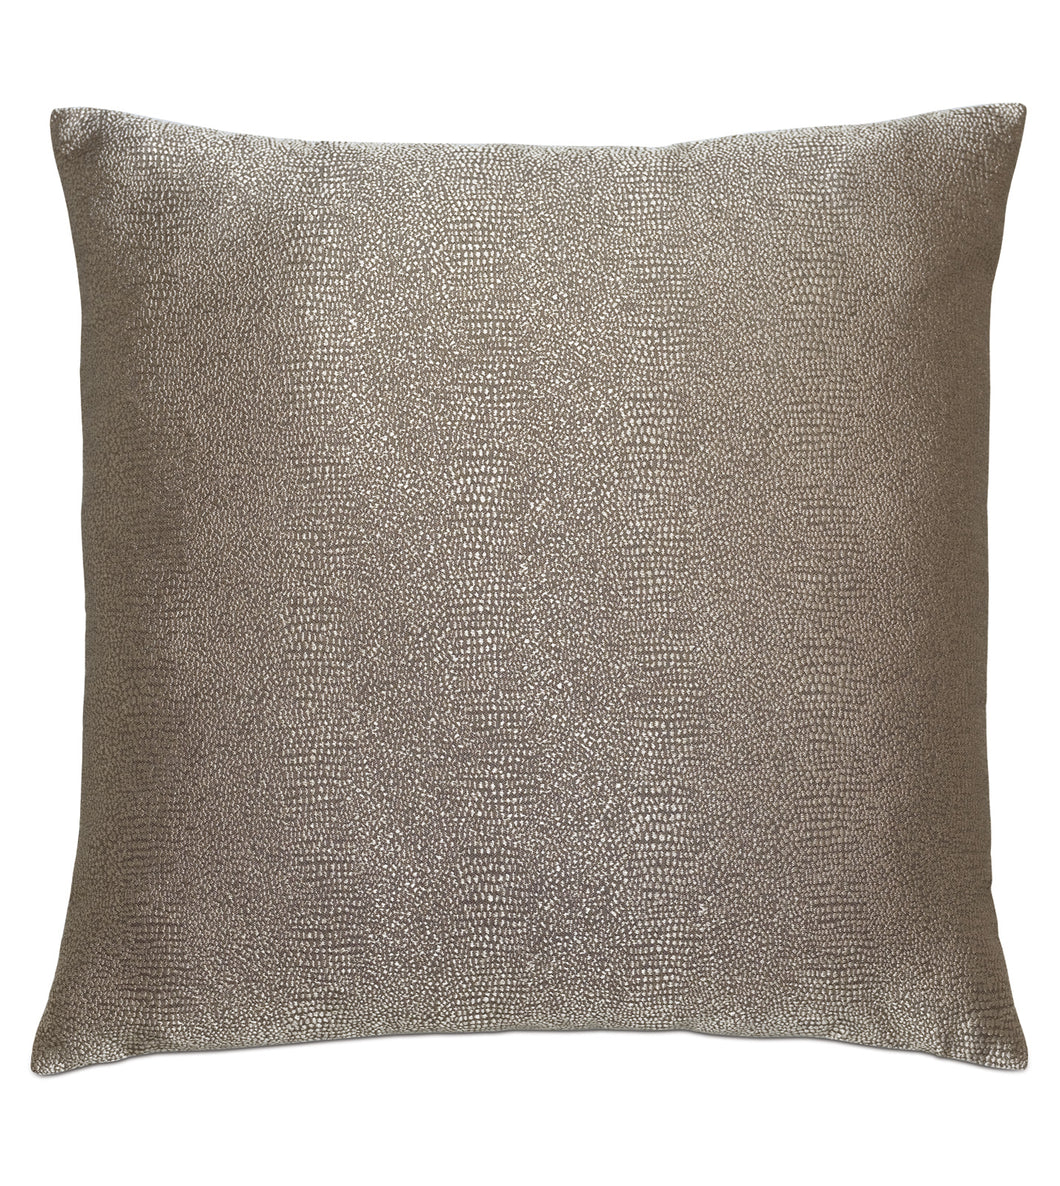 Dunaway Umber Decorative Pillow